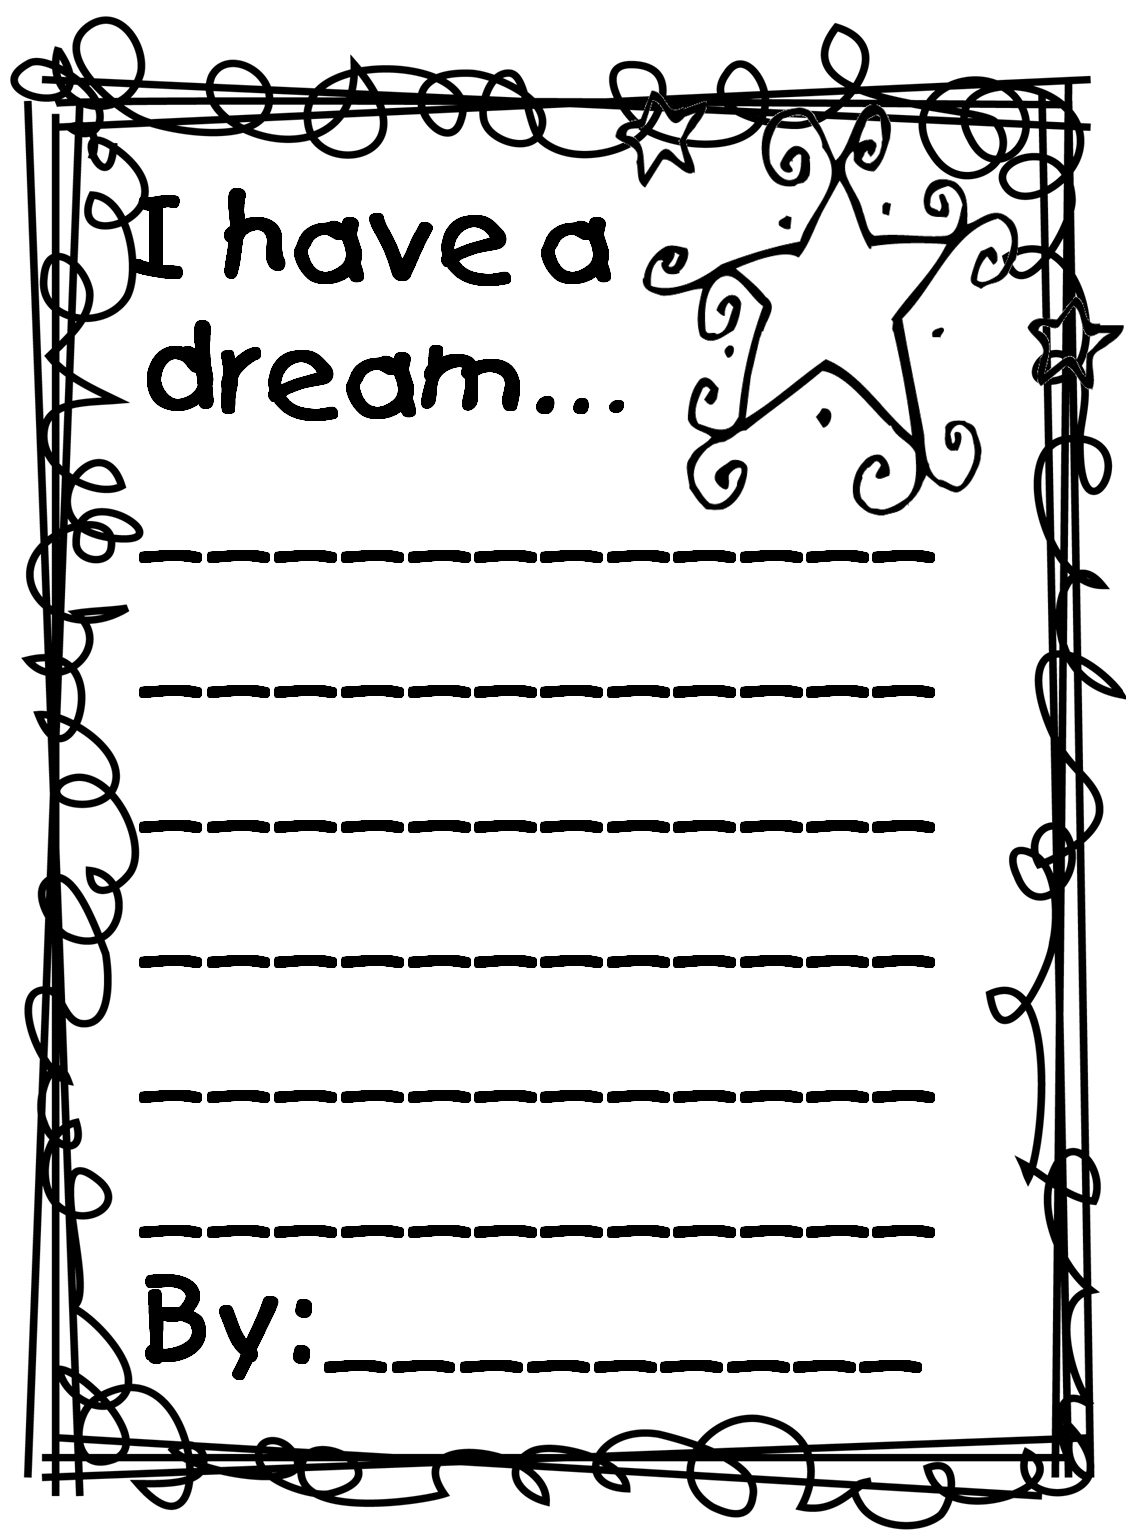 worksheet Martin Luther King Worksheet martin luther king jr coloring pages and worksheets best i have a dream worksheet